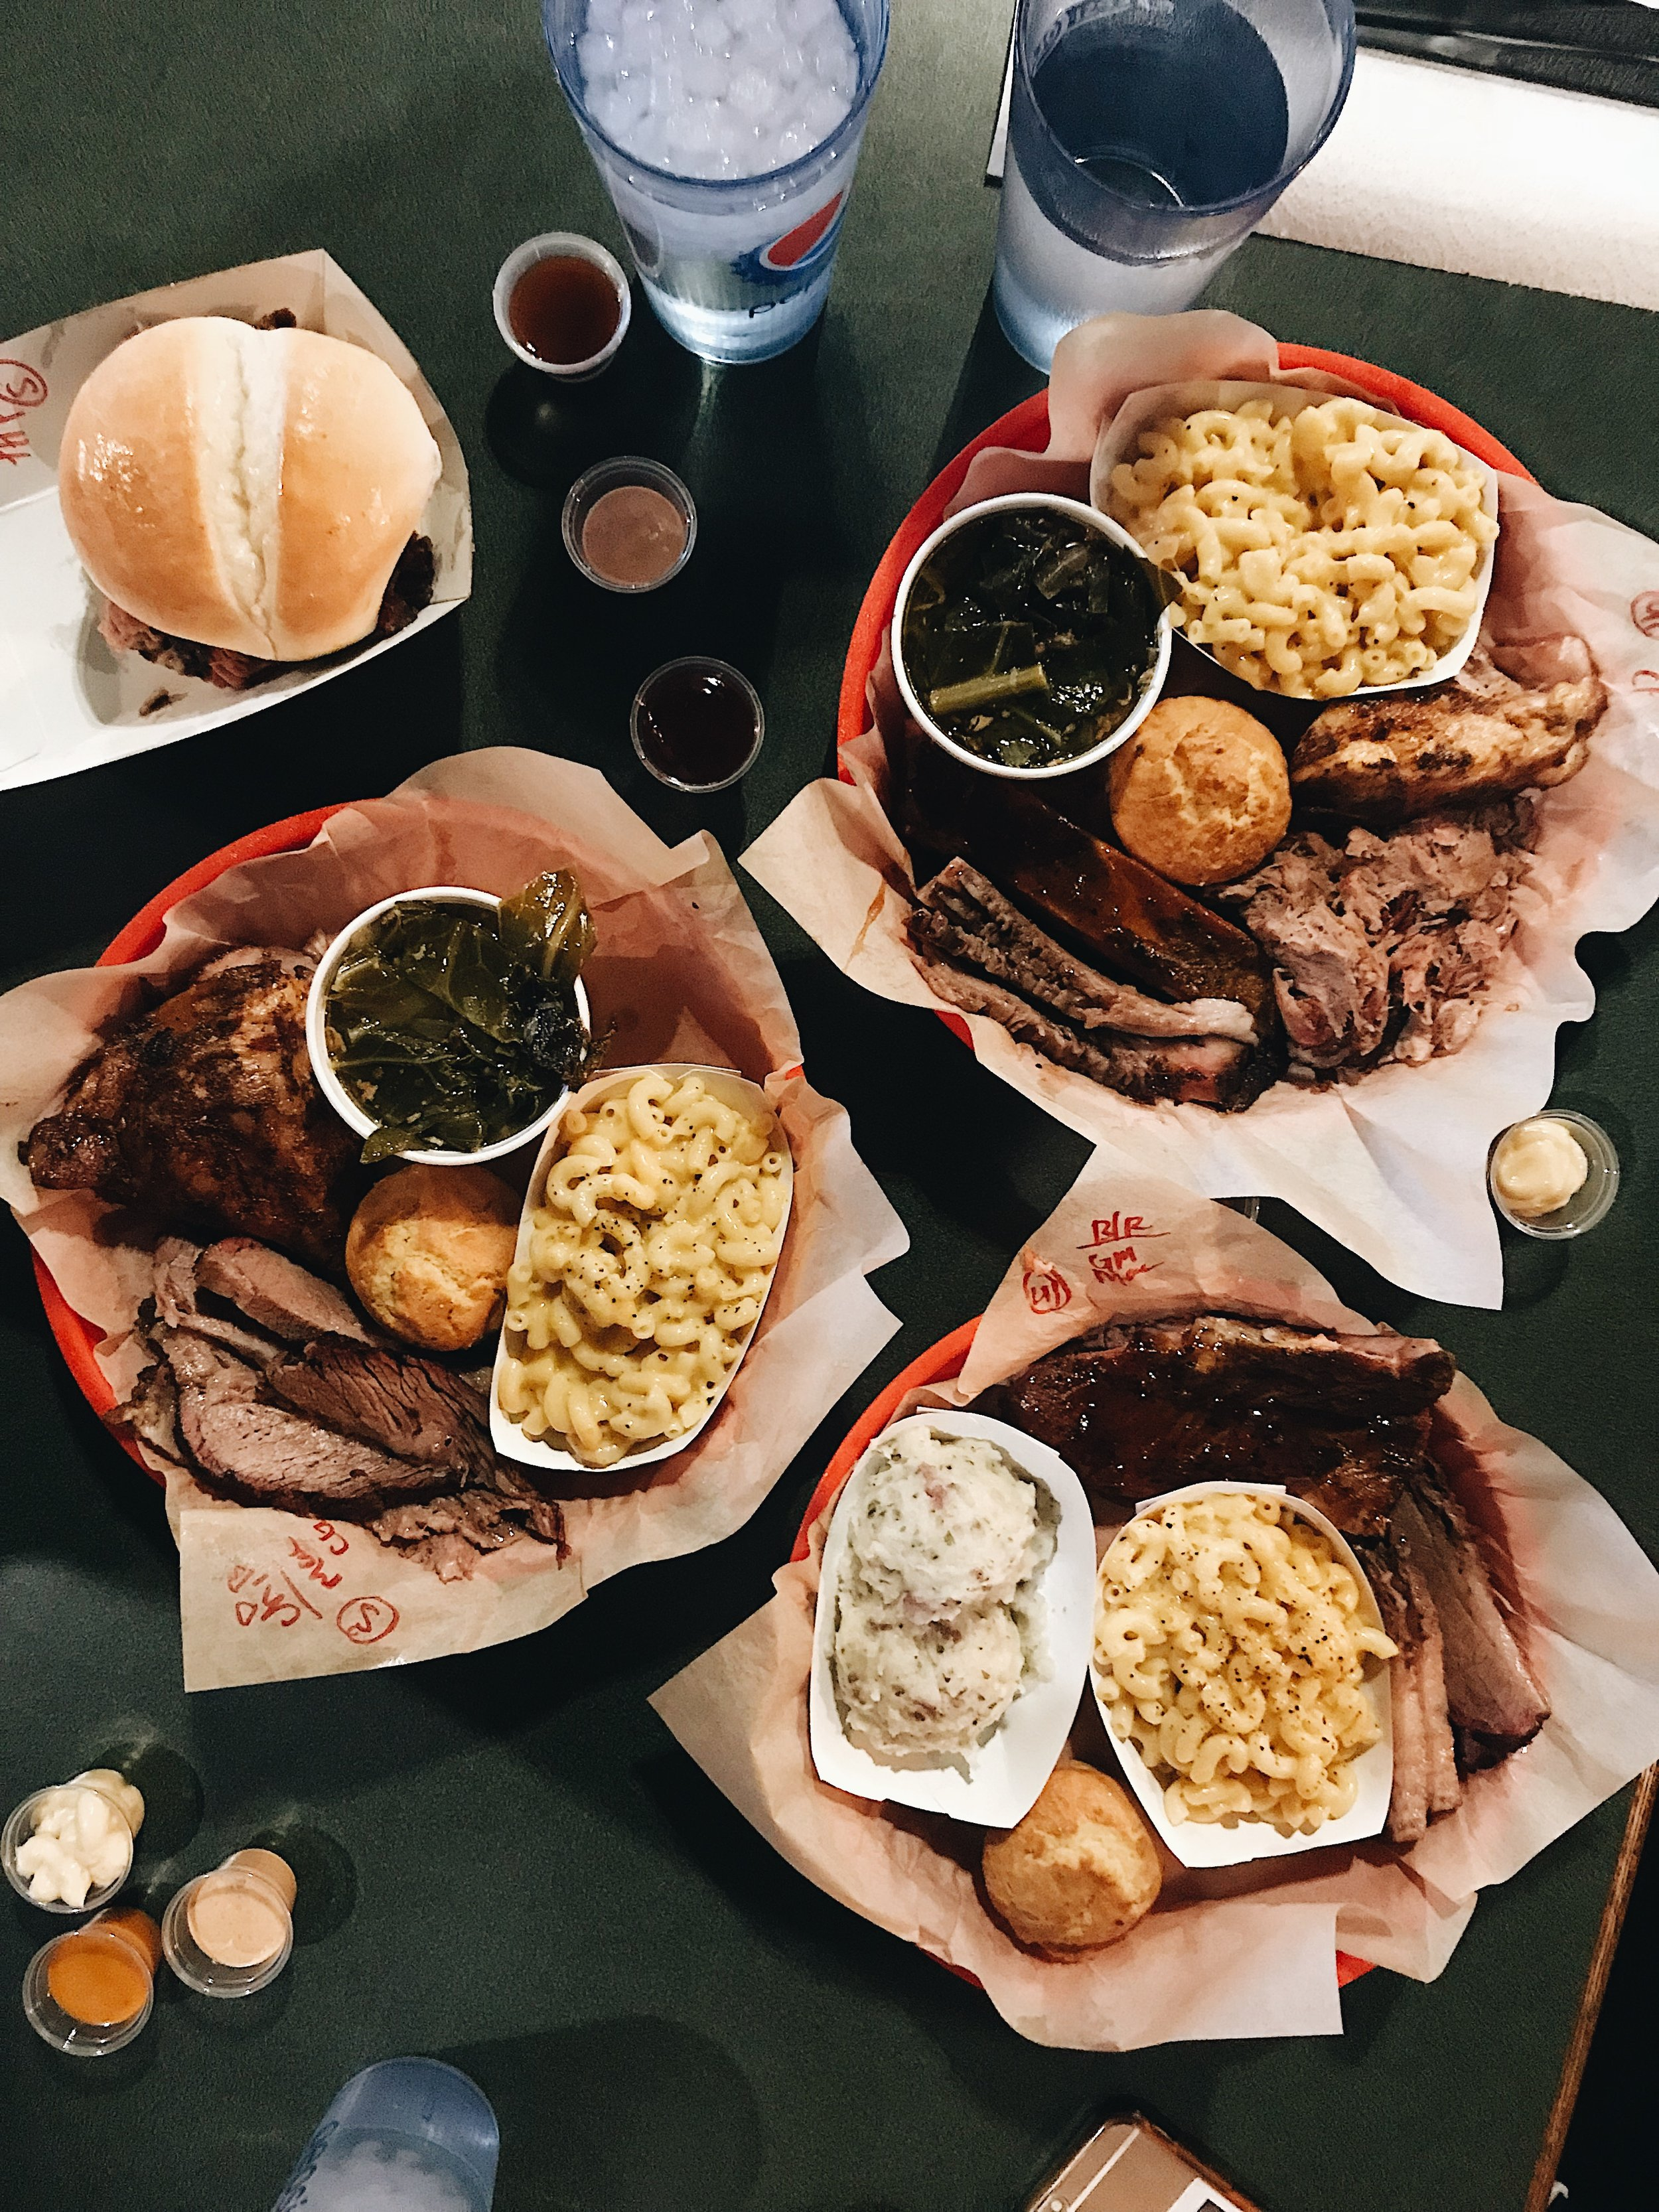 We ended the day after the hike with a hearty, delicious meal at  Lonny Boy's Barbecue  in Hurricane, Utah. They have multiple locations but our Airbnb happened to be in Hurricane, so this was beyond perfect.We were all starving and in need of sustenance, so a perfect post-crazy hike meal! Shout out to our Airbnb host to feeding us a homemade breakfast the morning after as well! We ate good after this hike guys. Heart, body, and soul are soooo full.  Shot on iPhone.